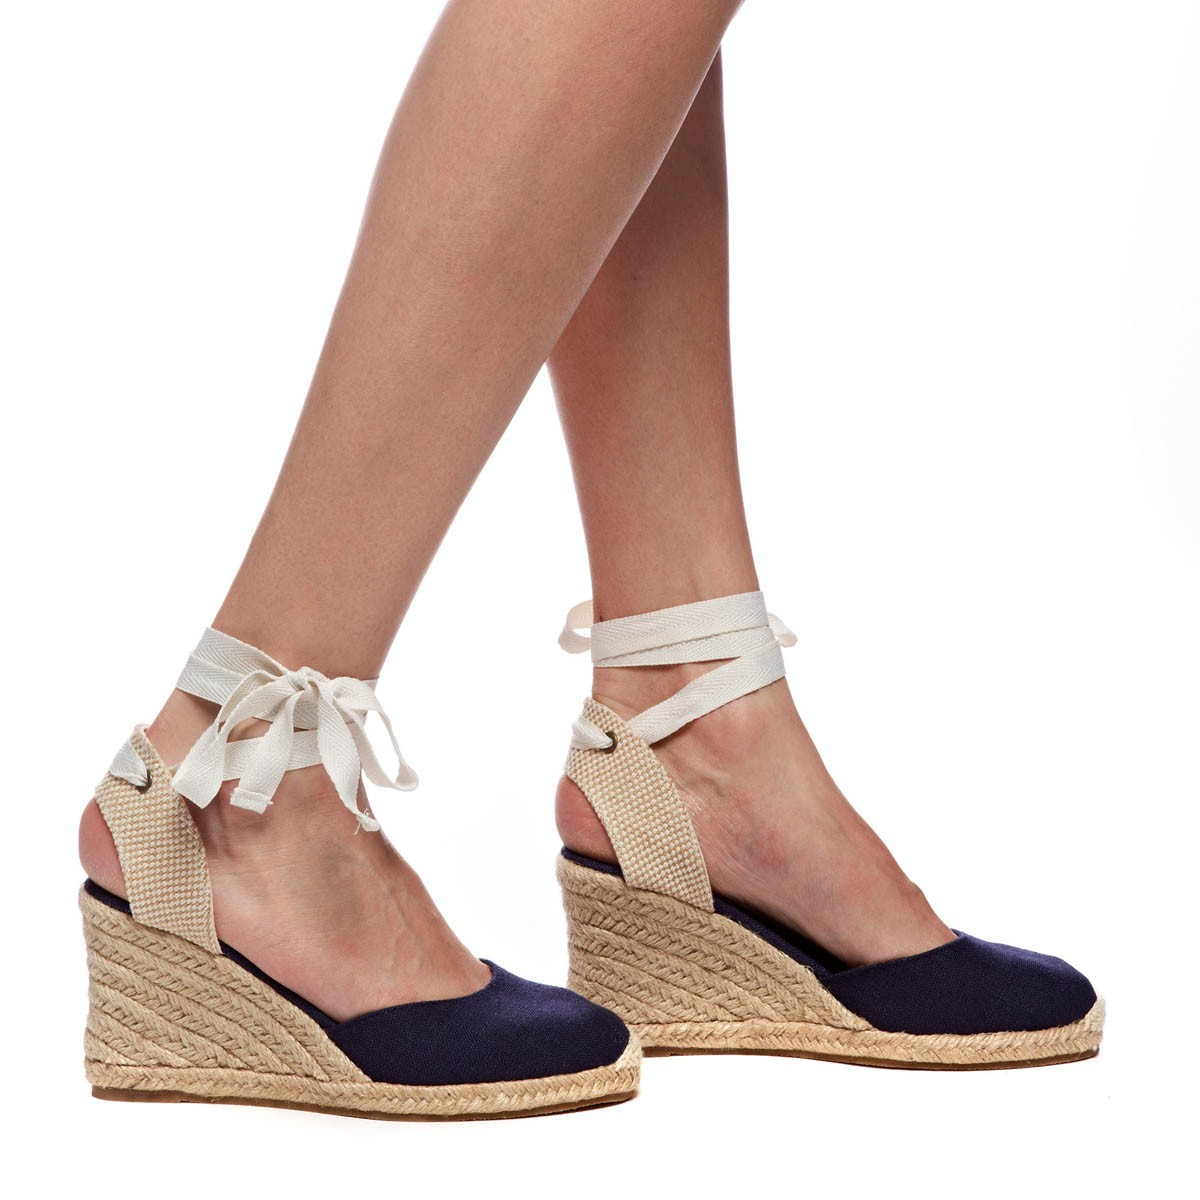 bbf7bbcc693 Soludos Blue Tall Wedge